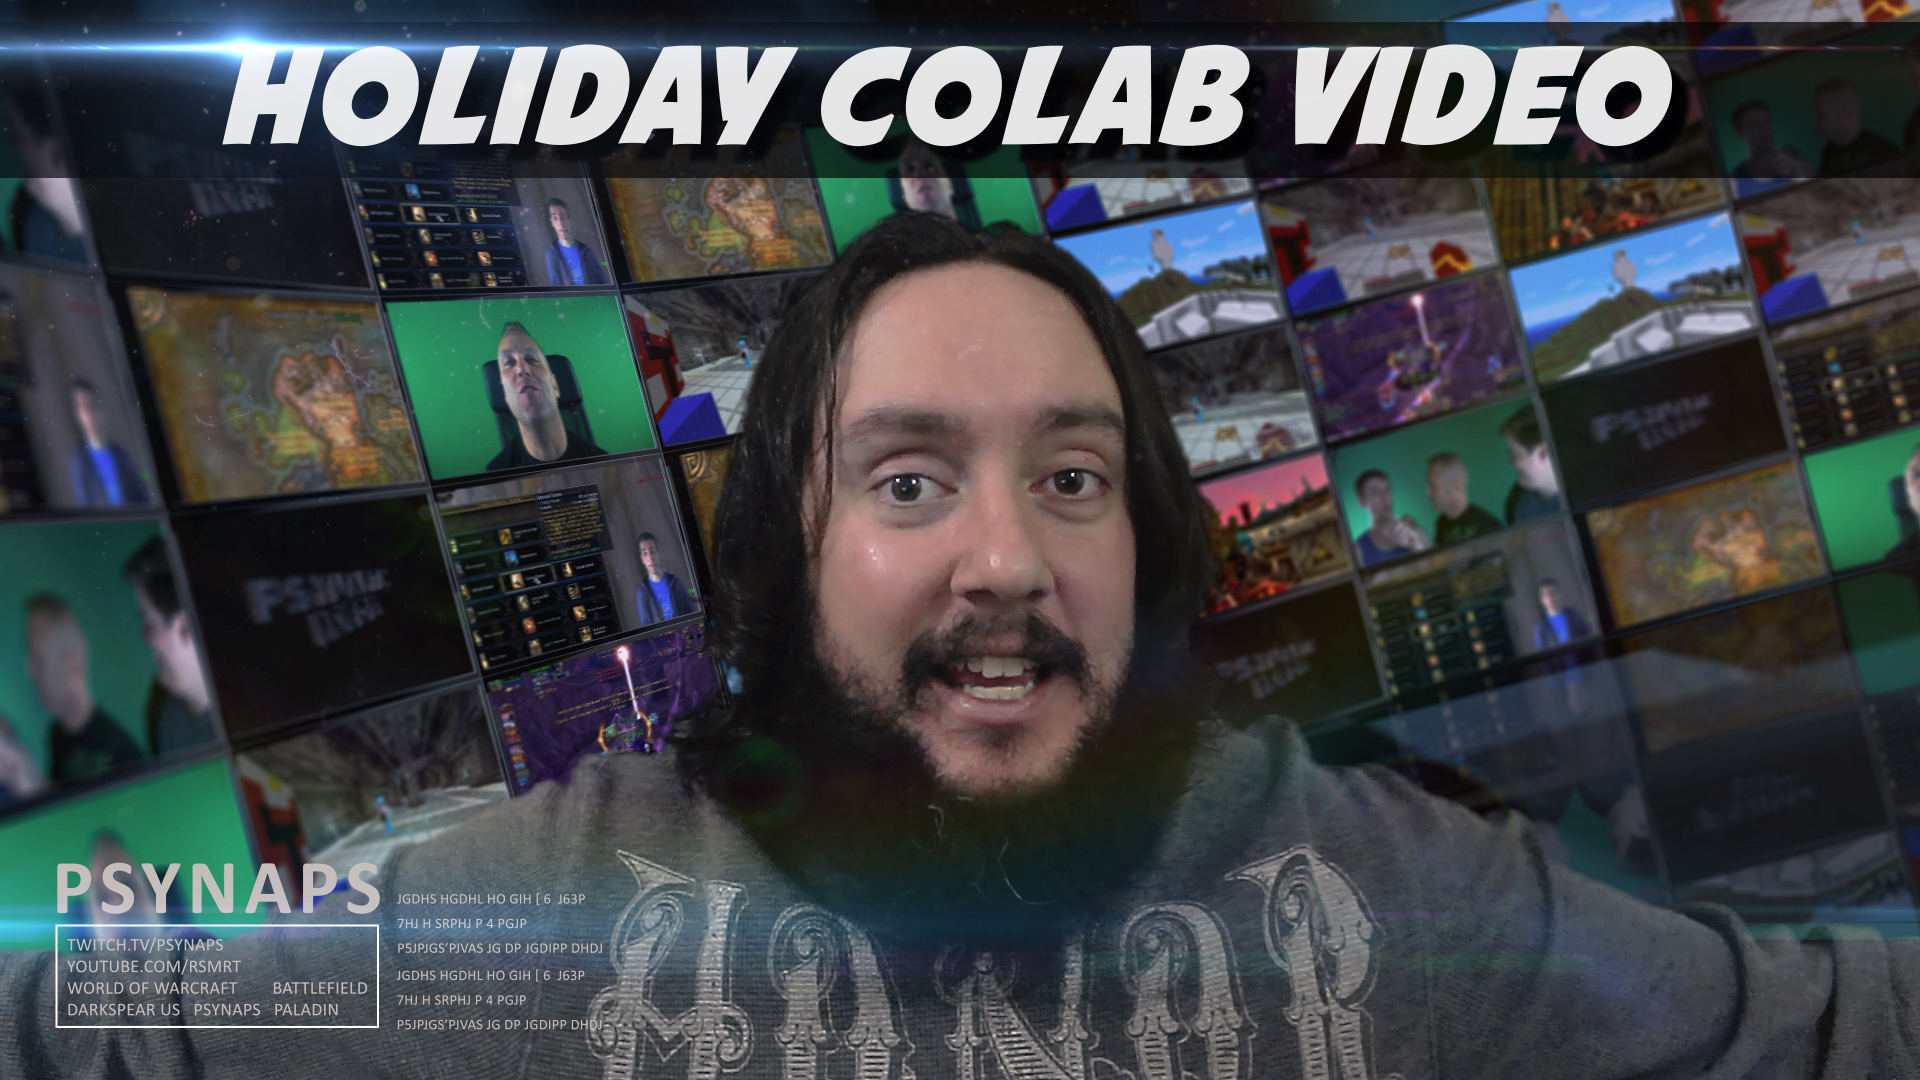 Holiday Collaboration Video by Psynaps